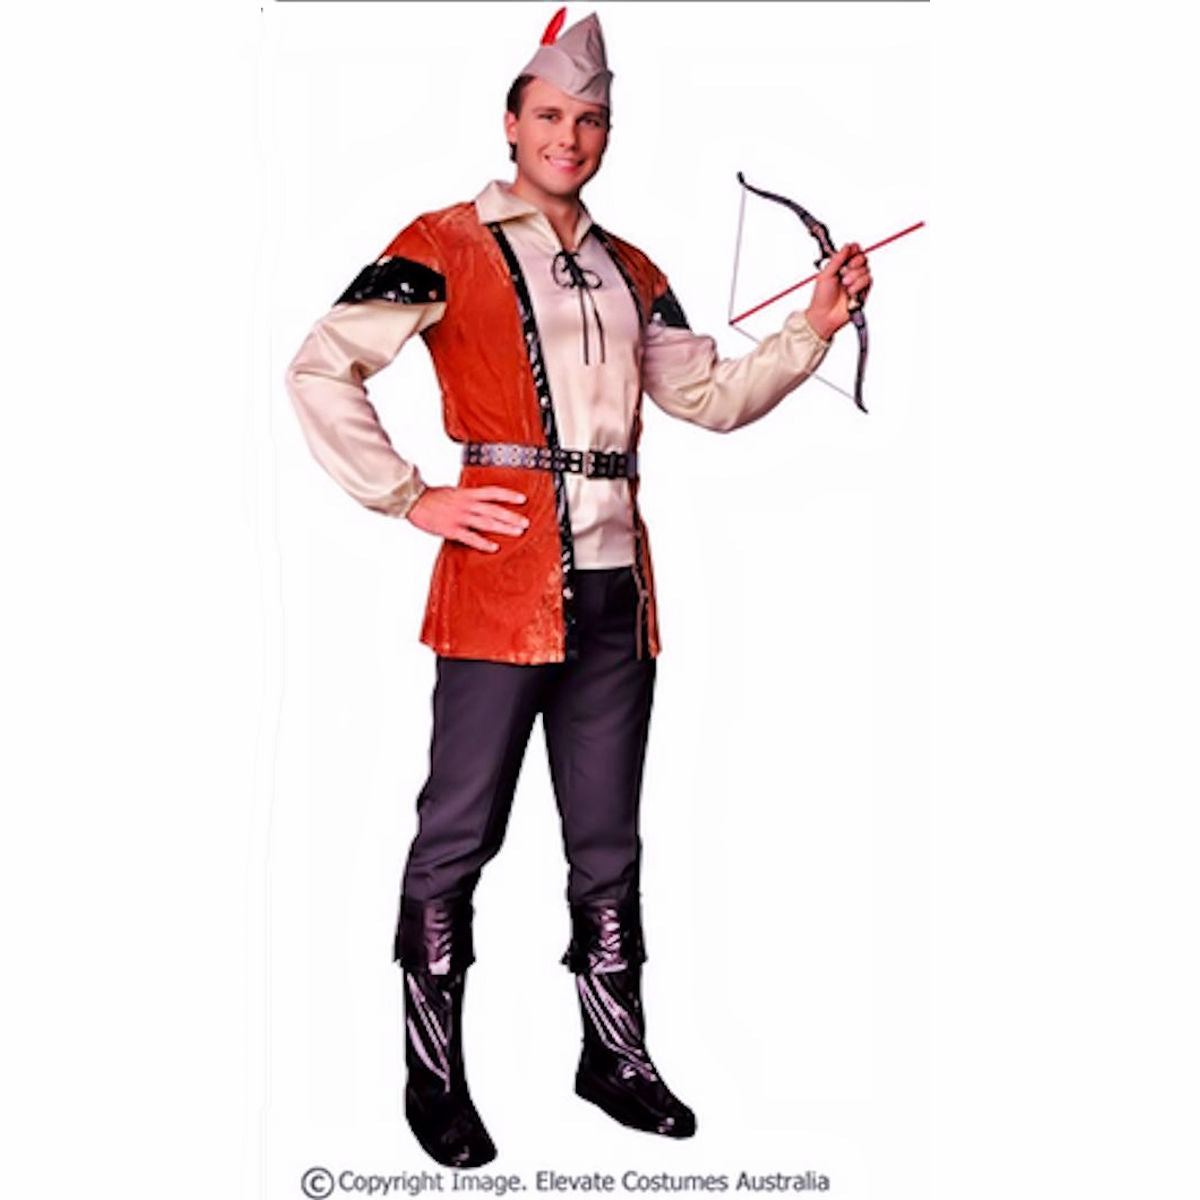 Robin Hood Prince of Thieves Men's Deluxe Fancy Dress Costume 6 piece set